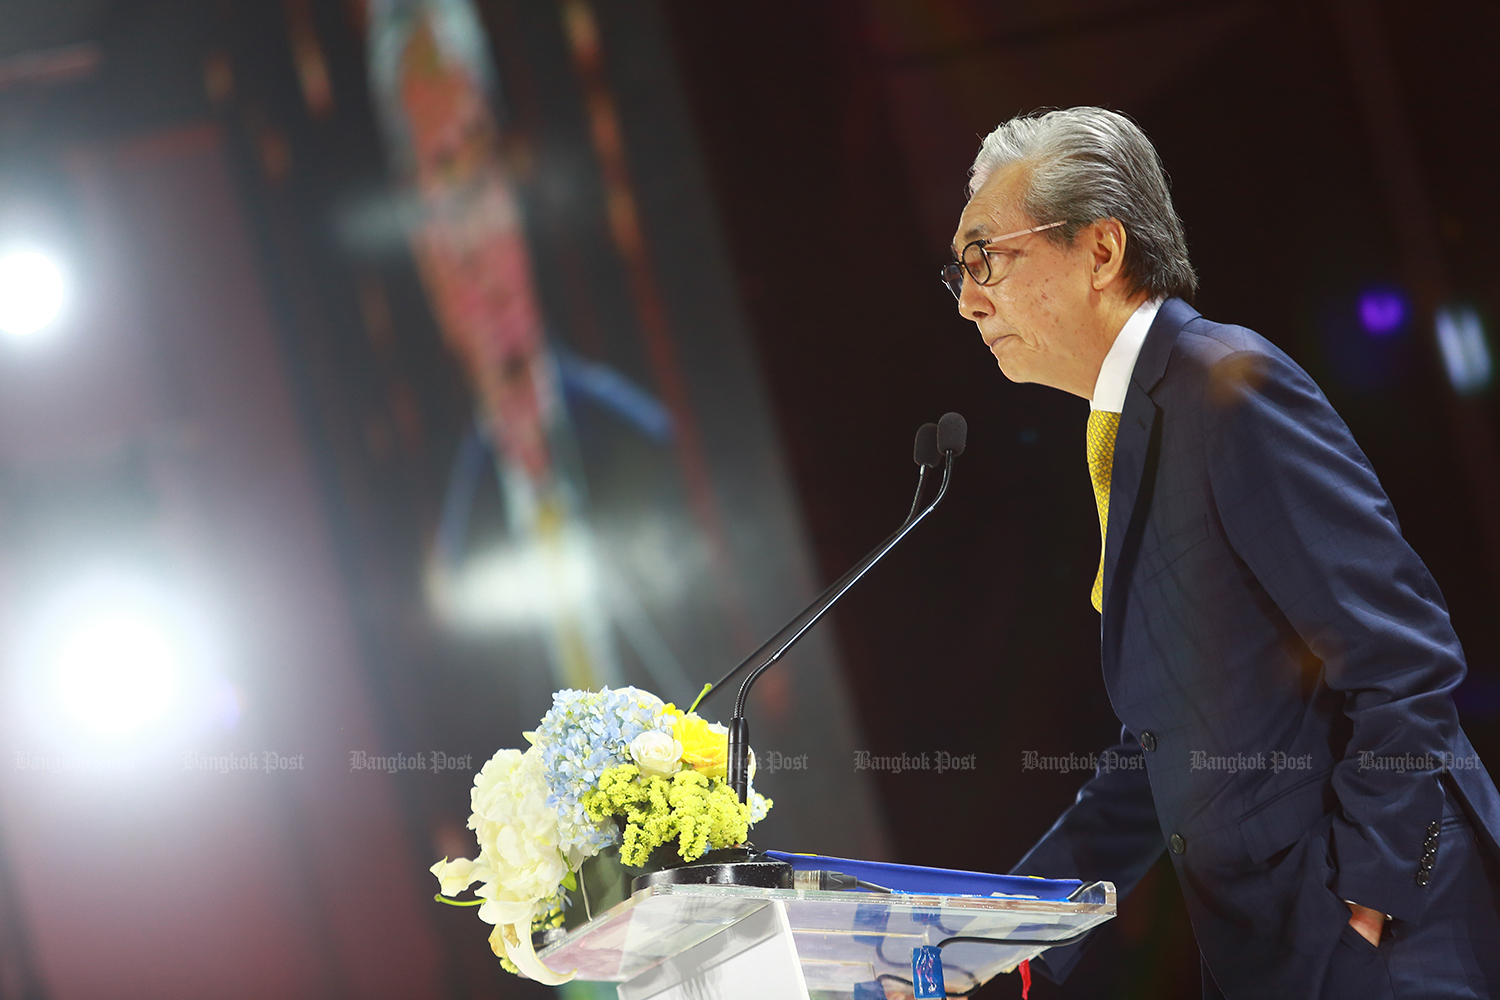 Deputy Prime Minister Somkid Jatusripitak urges Thai universities to join with overseas counterparts and the business sector to meet the huge demand for skilled workers in the Eastern Economic Corridor. (Bangkok Post file photo)